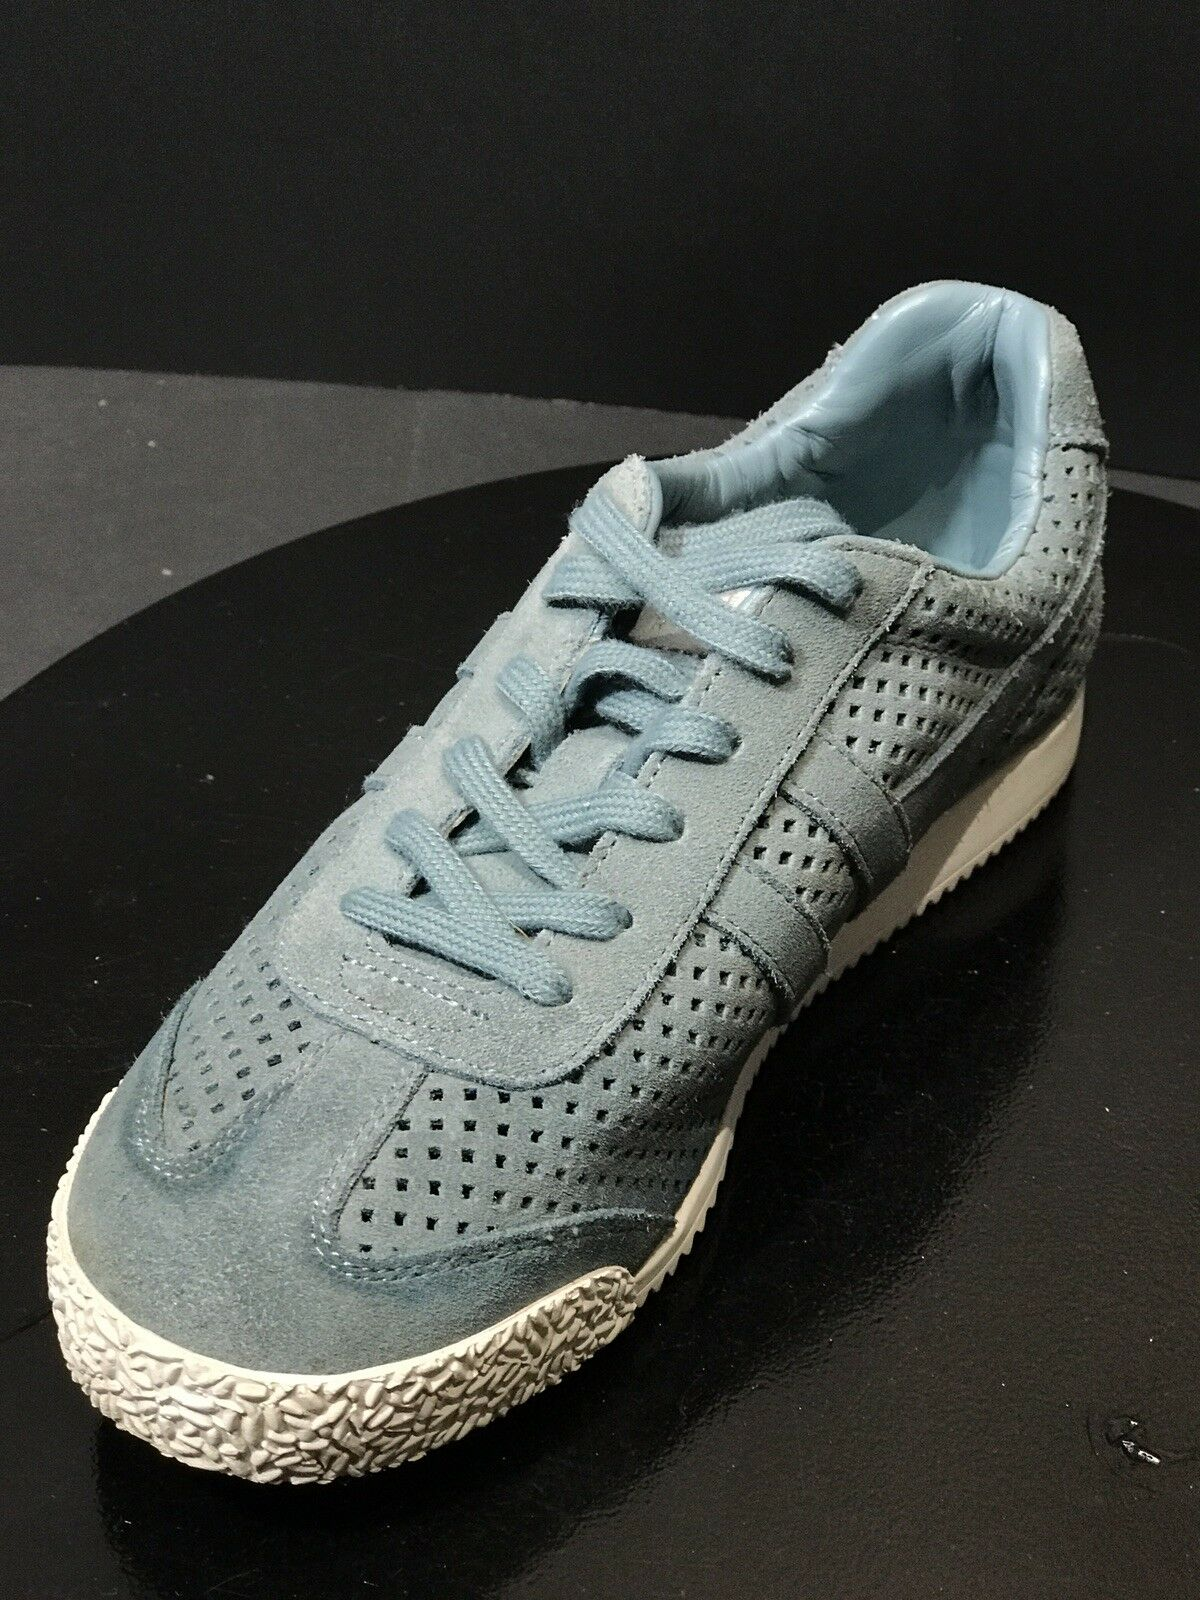 Gola SquaROT Damens Harrier SquaROT Gola Indian Teal Trainers Sneakers Größe US 7/UK 5/EUR 38 6d0b62